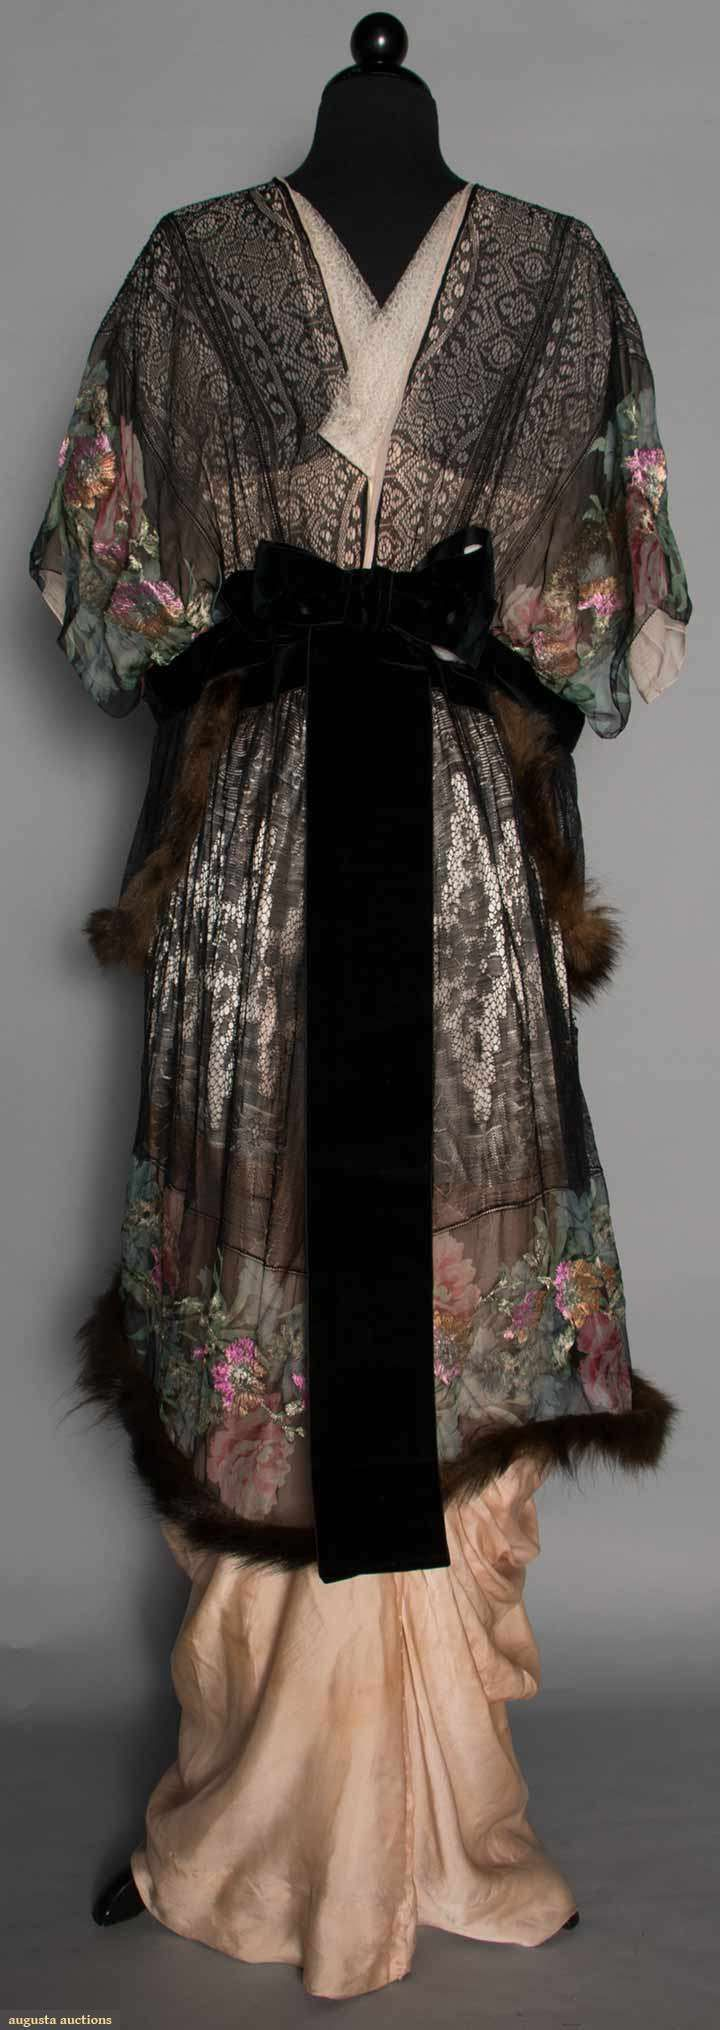 PRINTED LAME EVENING GOWN, c. 1913. Gown of floral printed & lame brocaded chiffon w/ black lace, short kimono sleeves, 2 fur trimmed chiffon & lace skirt tiers, black velvet bow trims, narrow draped pale pink underskirt. Back